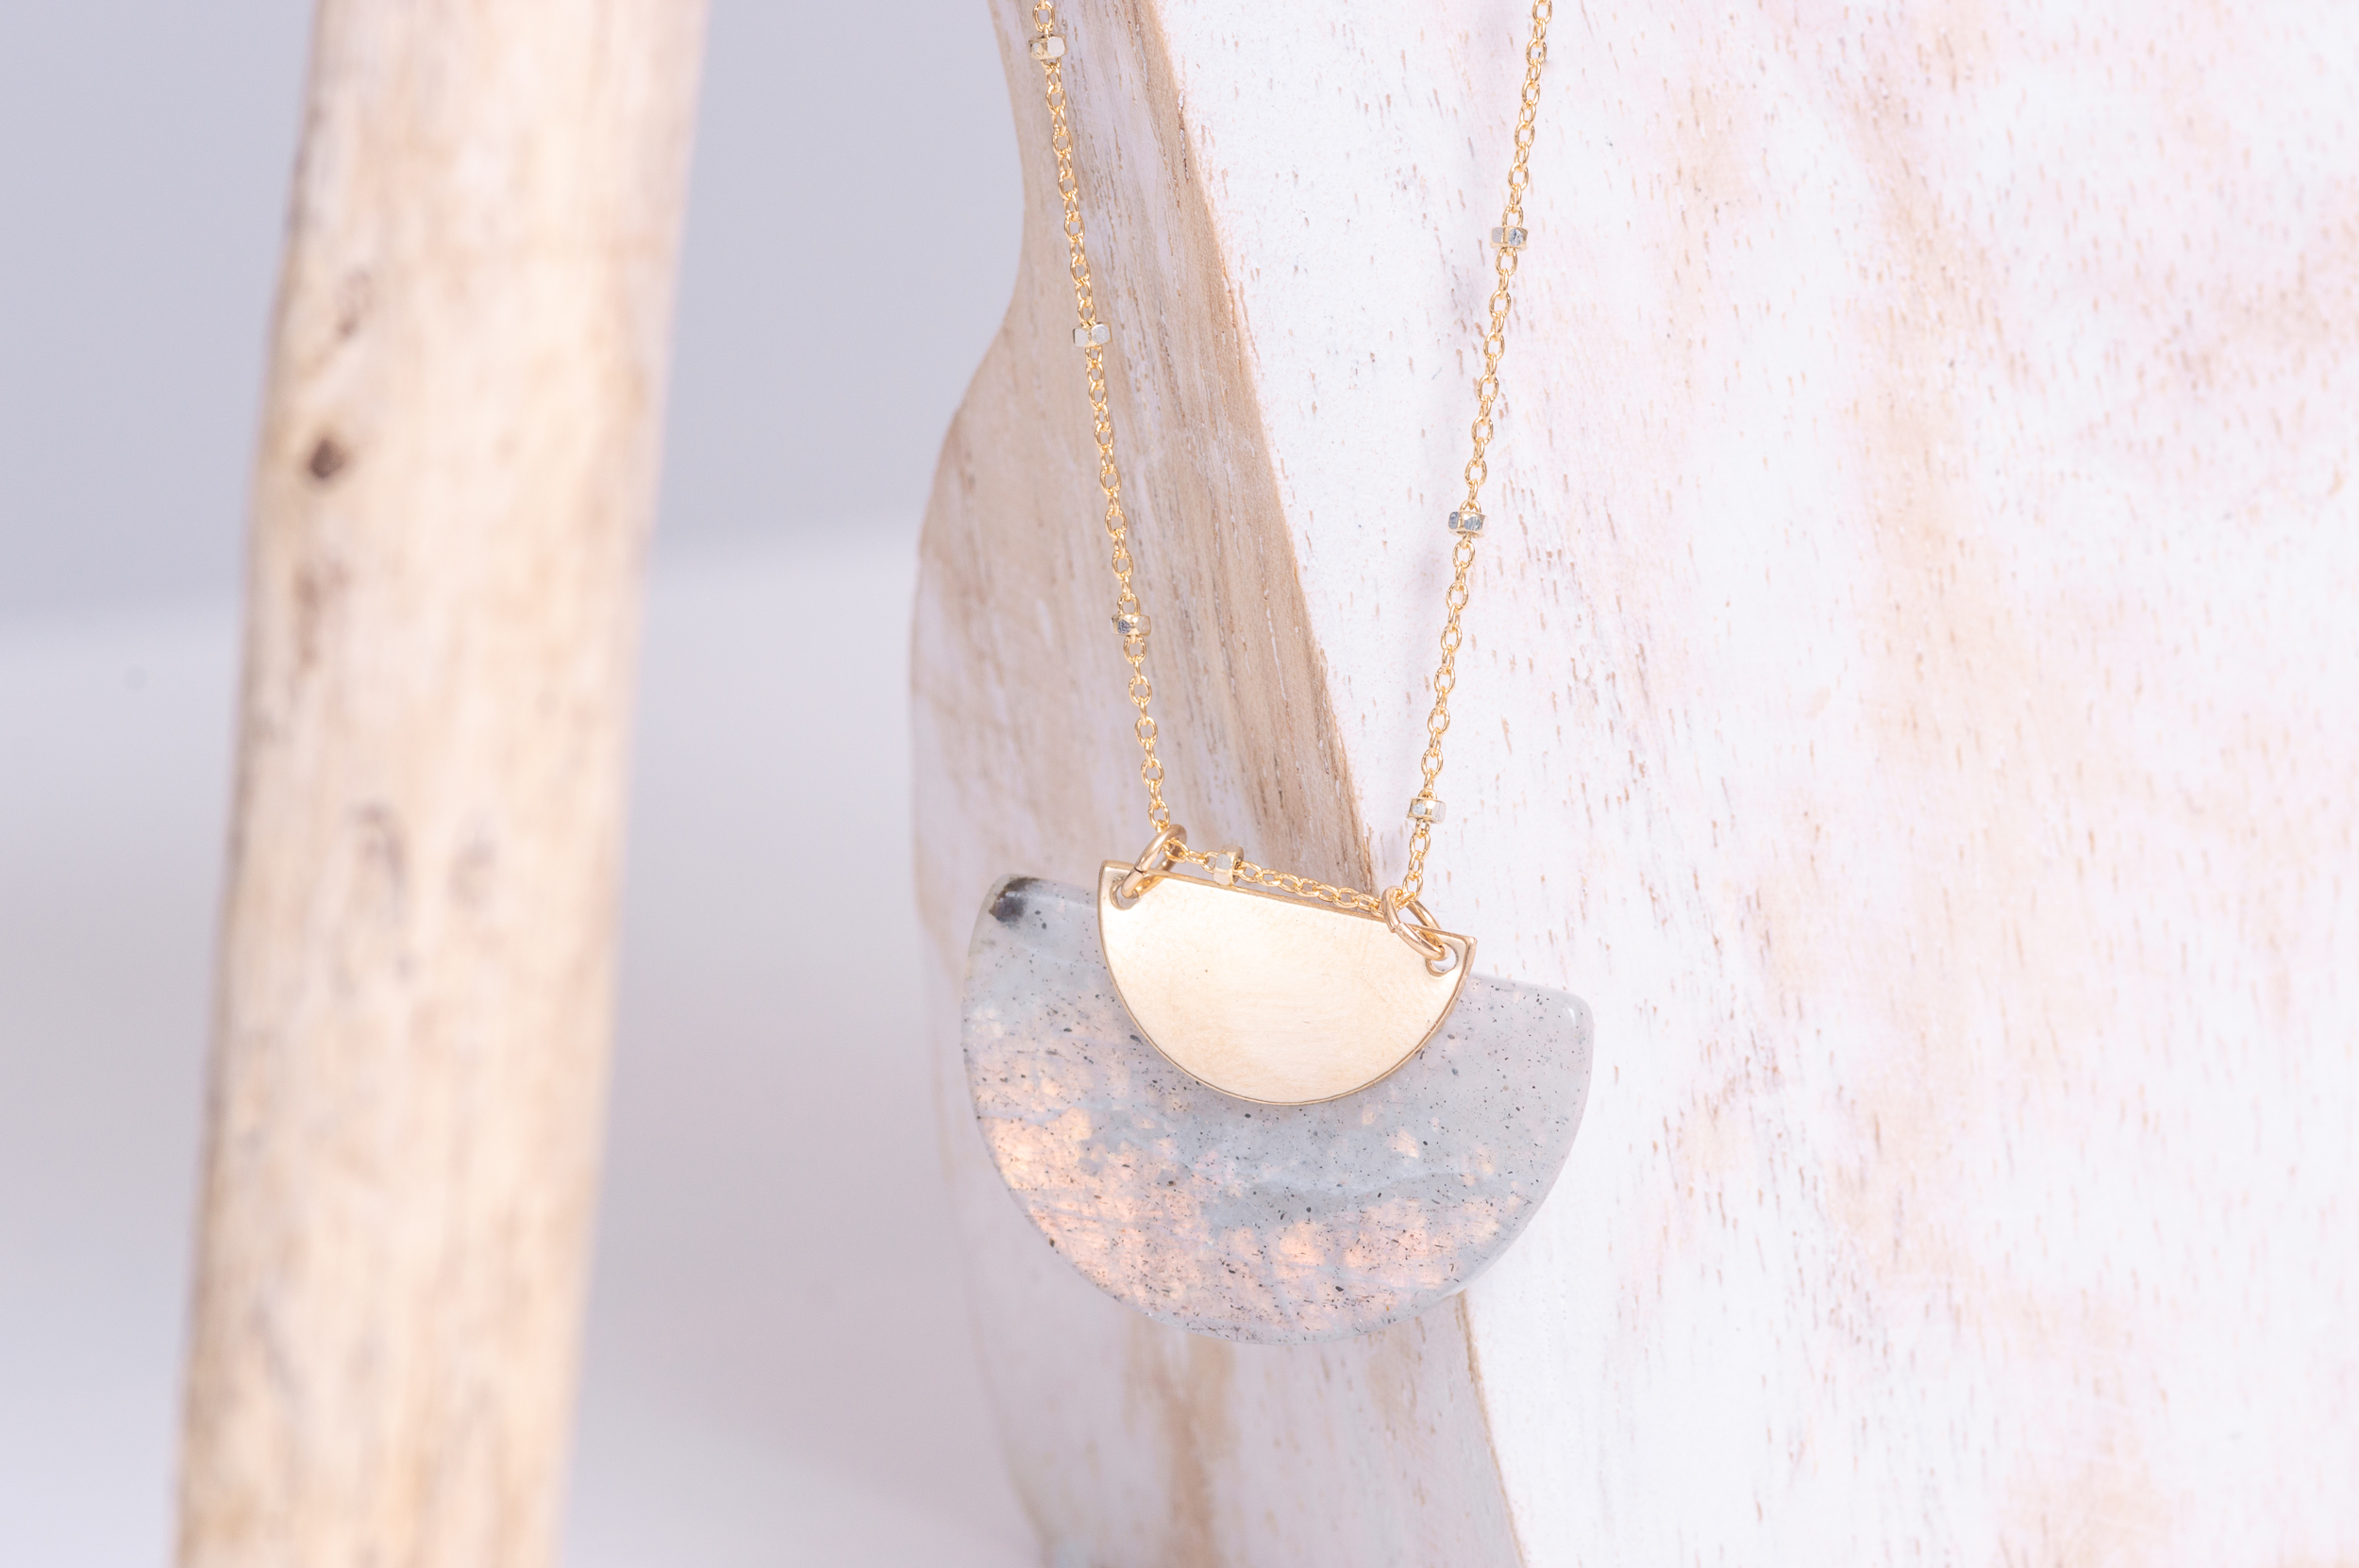 Brazil necklace with a large natural Moonstone and natural golden reflection.